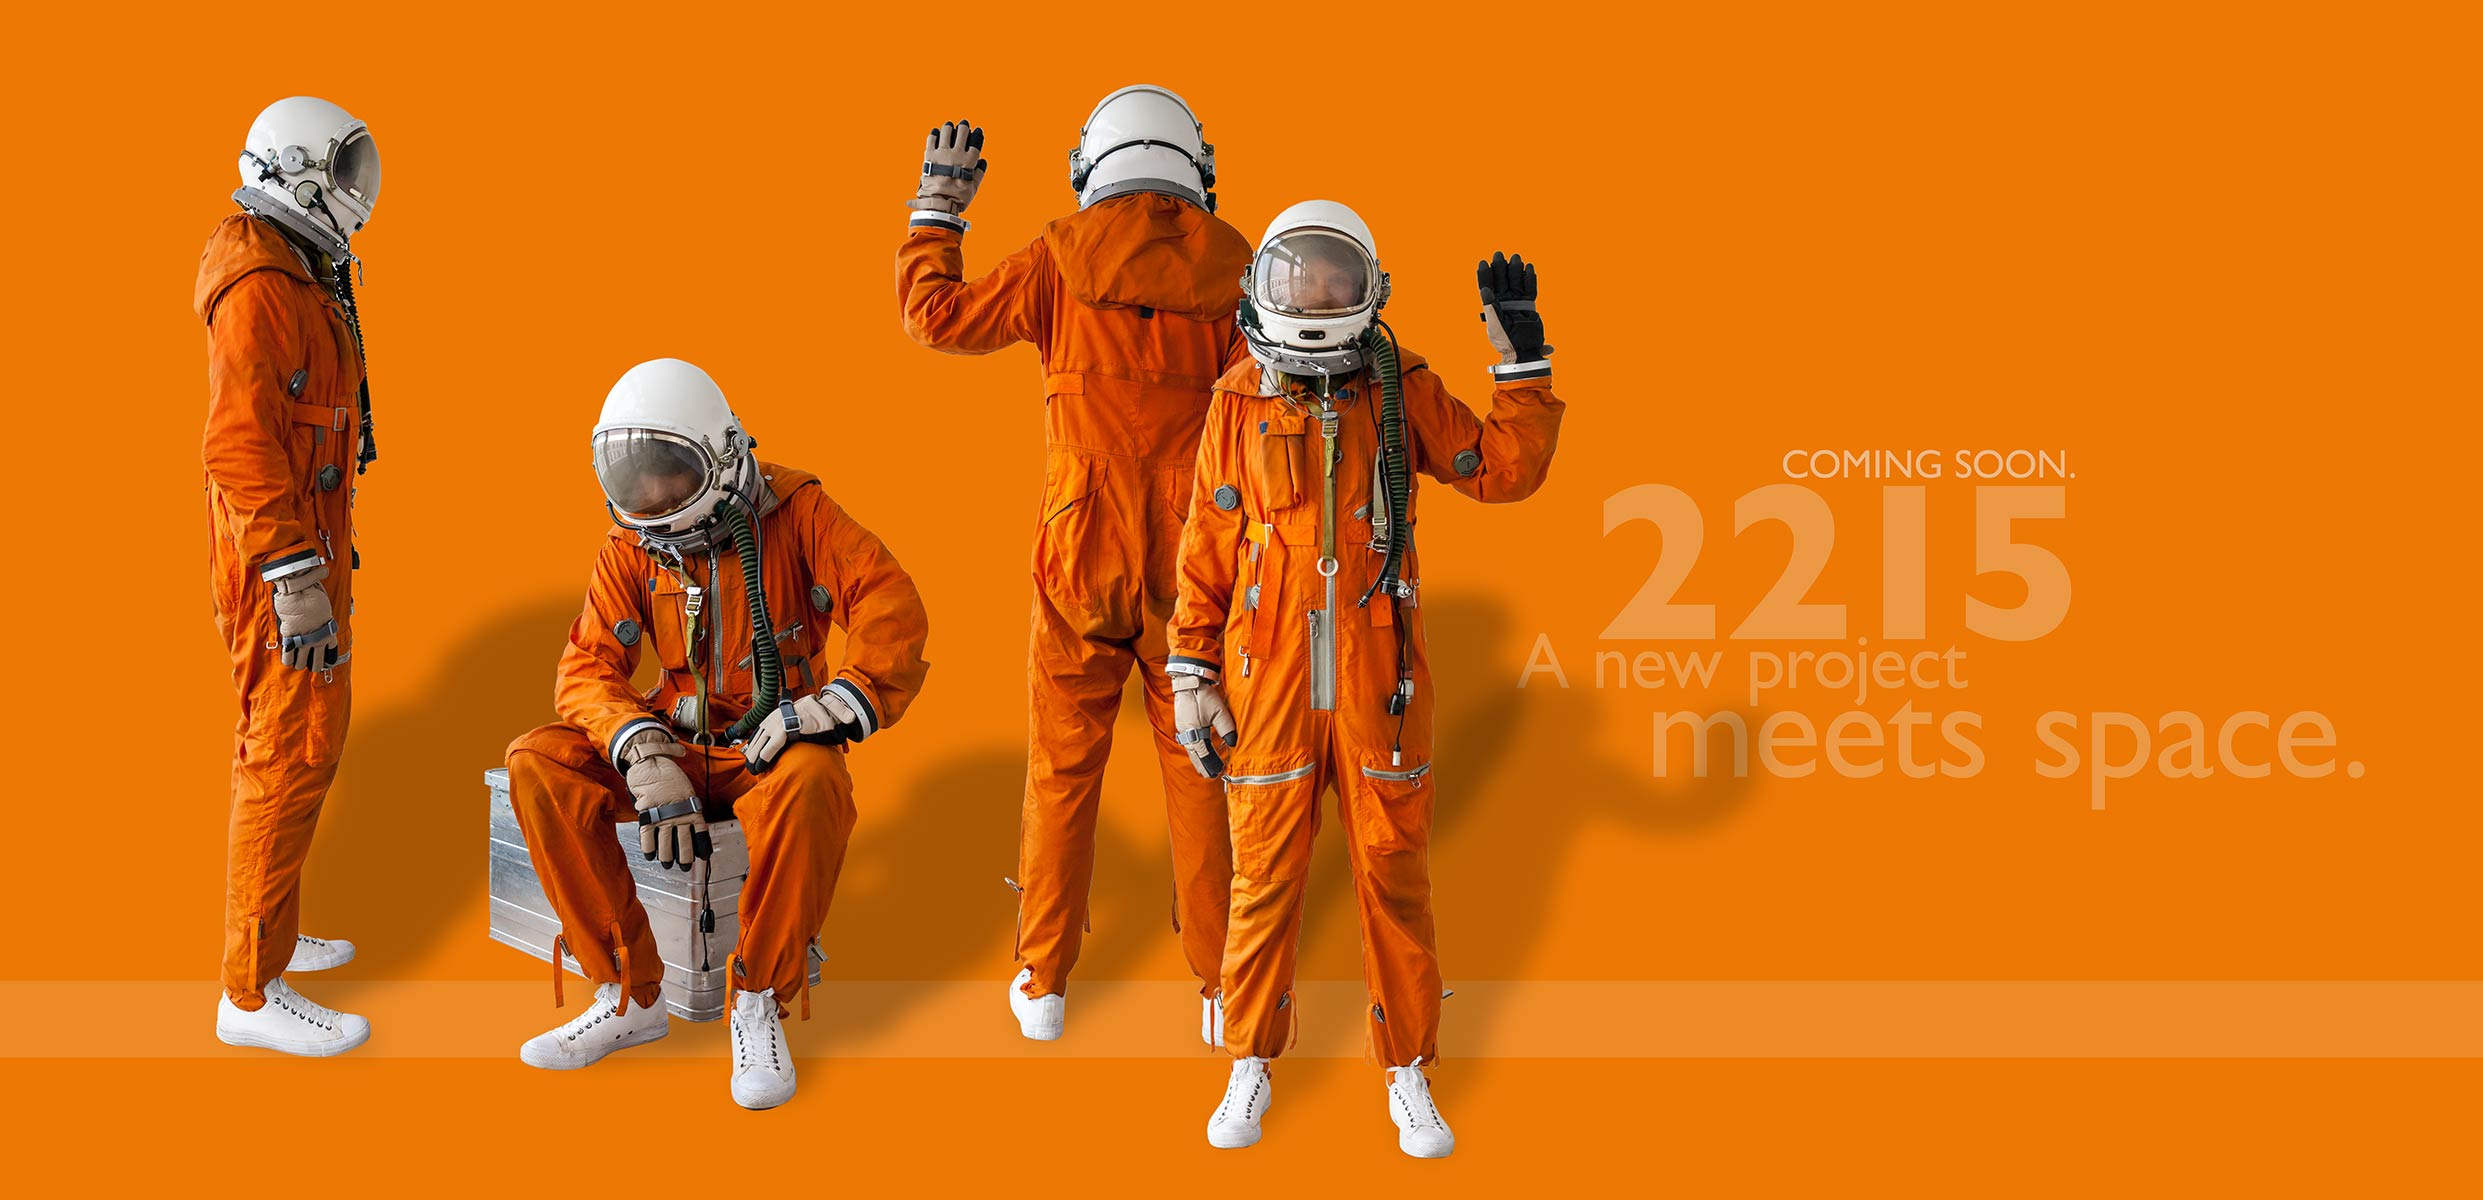 all-standing-astronauts-countdown-01